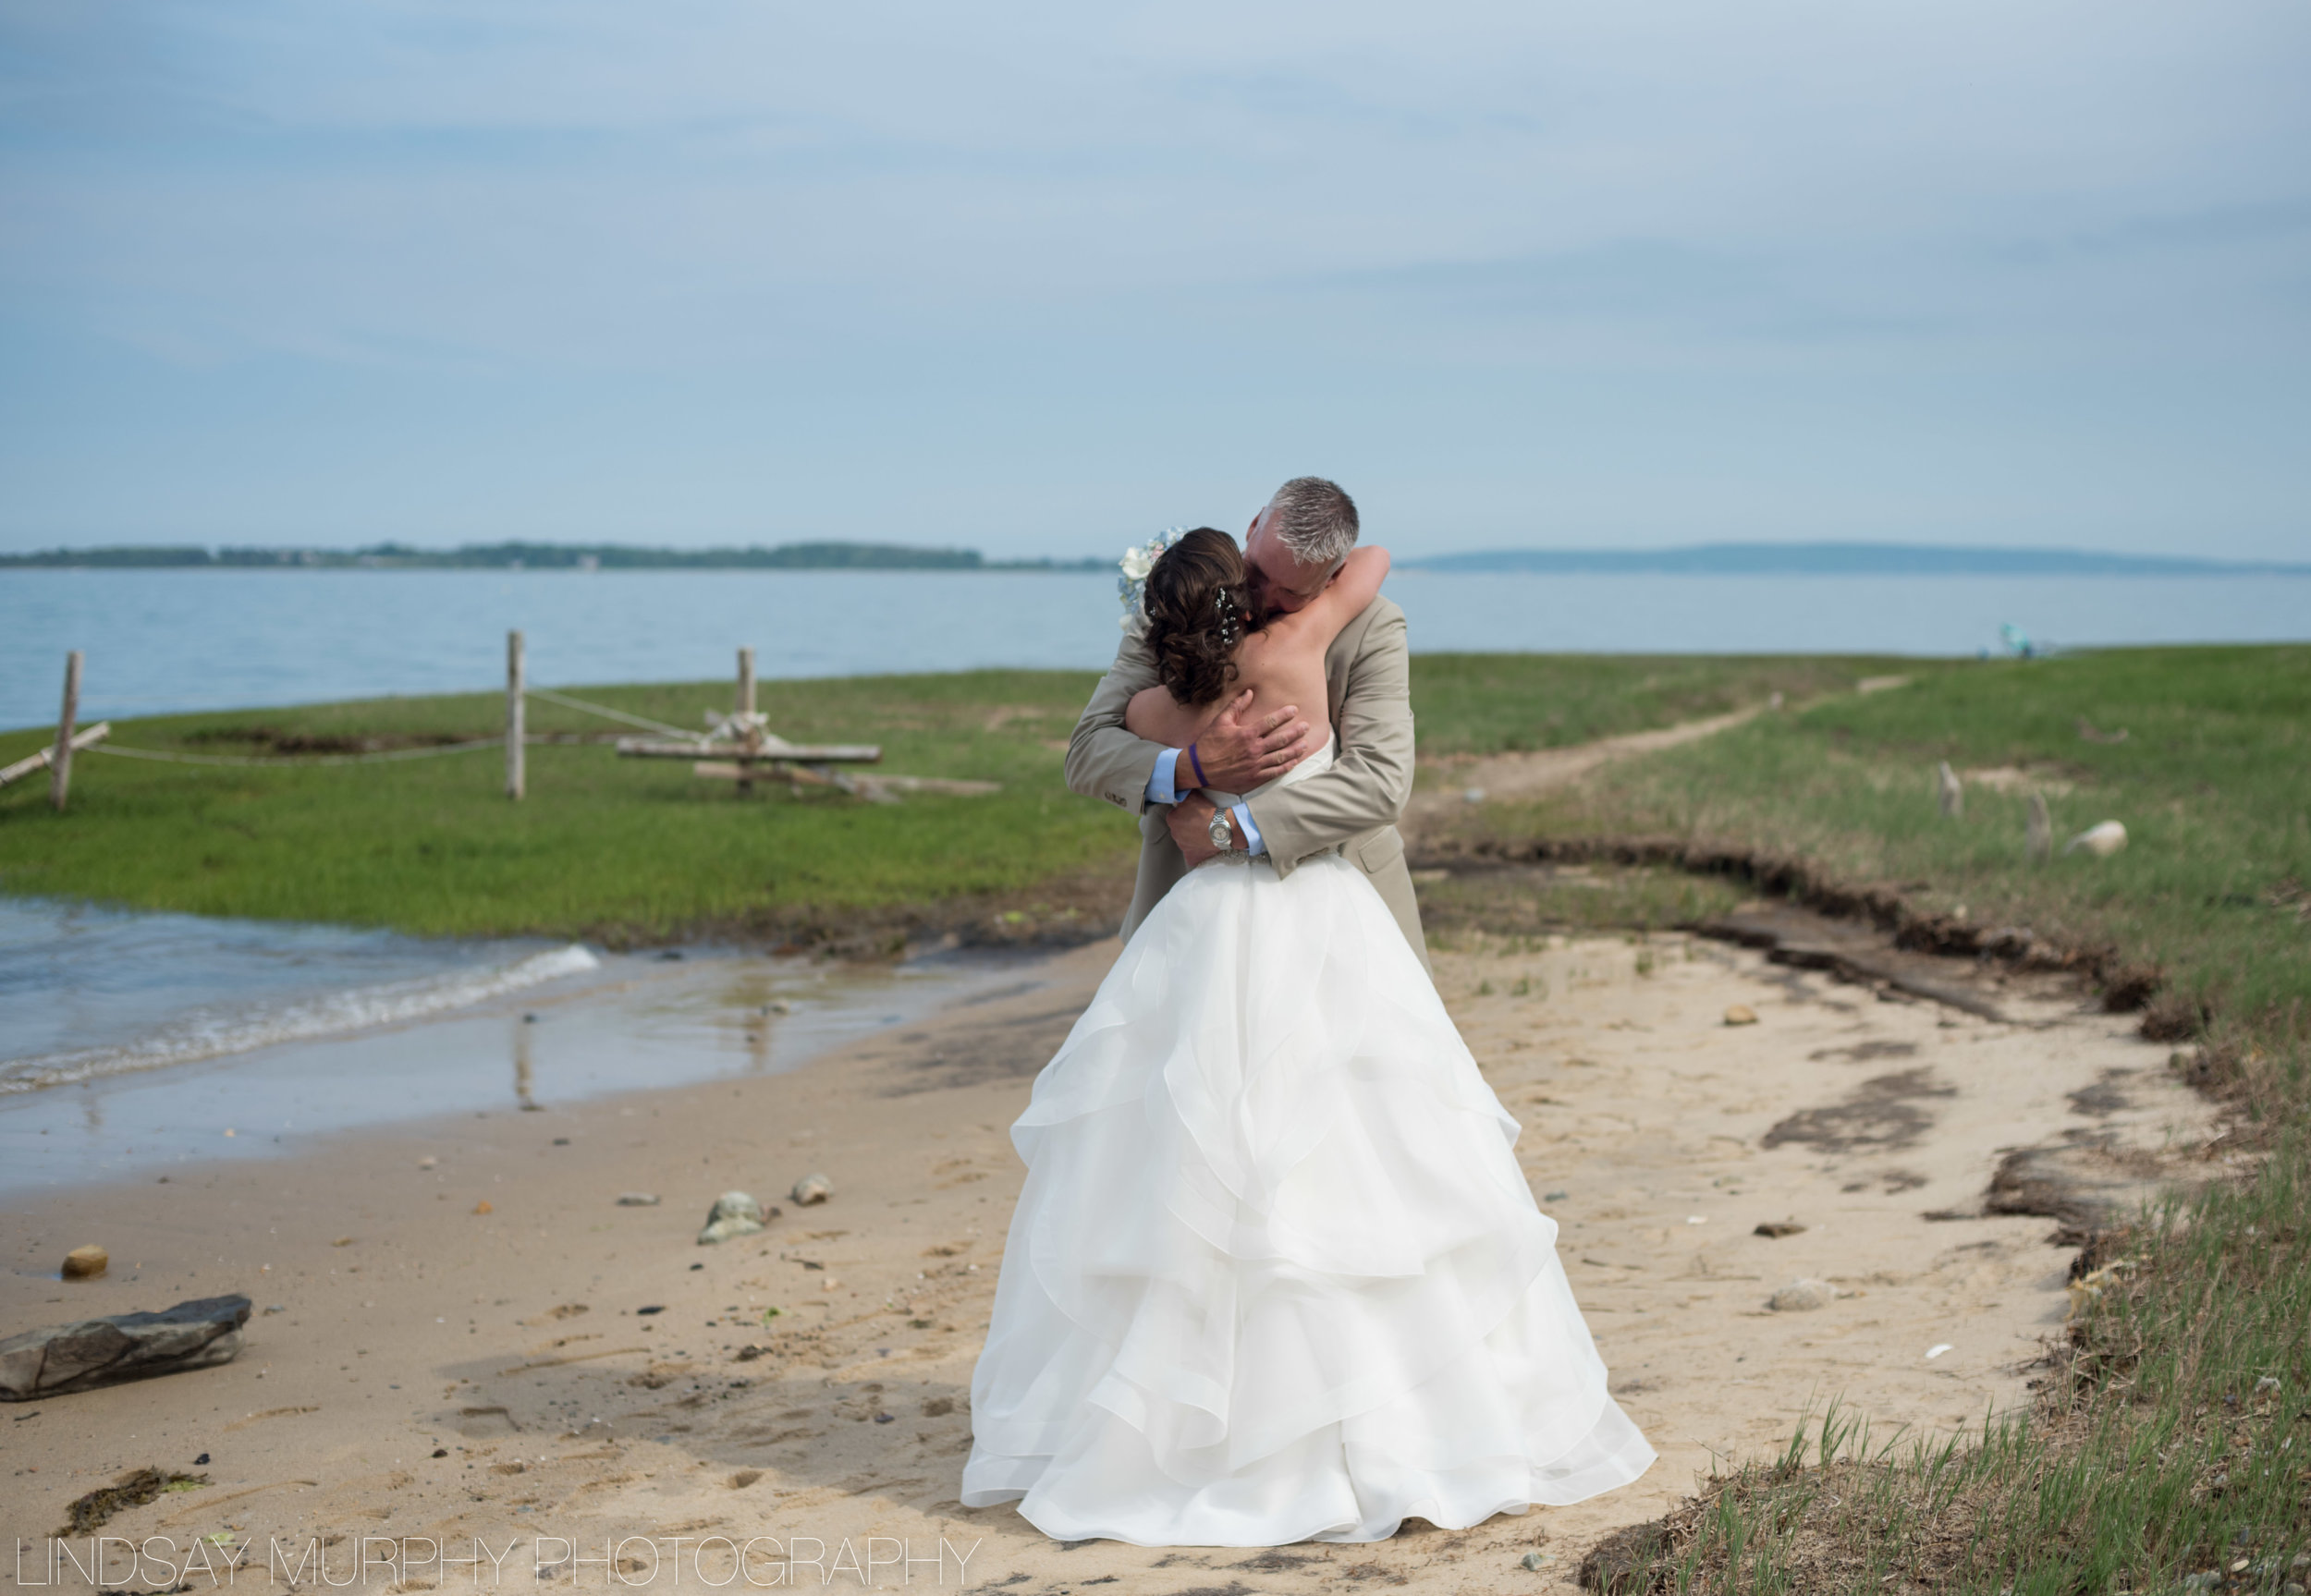 Duxbury_Engagement_Photographer-69.jpg